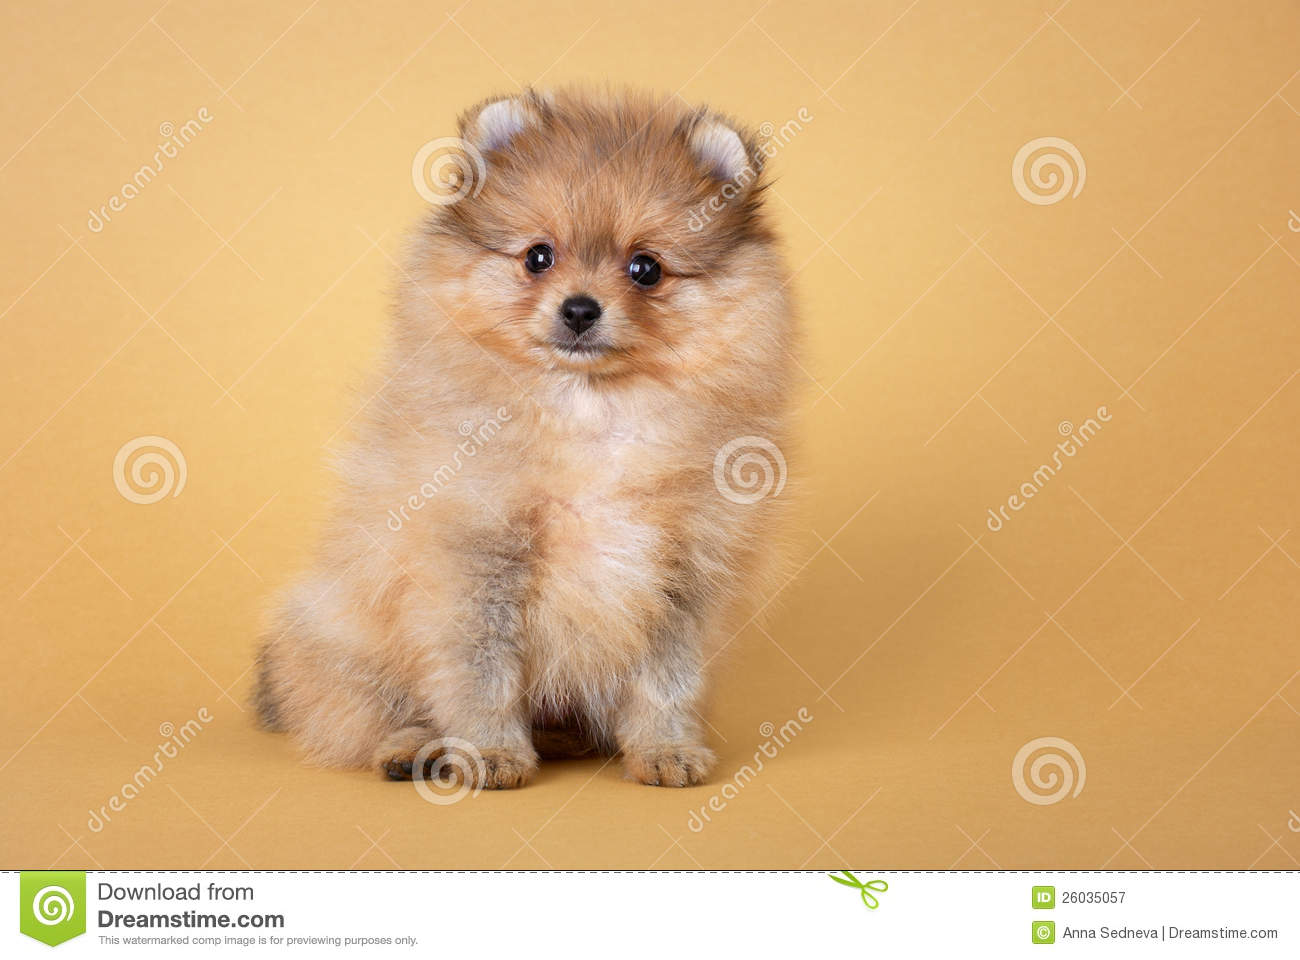 Pomeranian Spitz Puppy Royalty Free Stock Photography - Image: 26035057